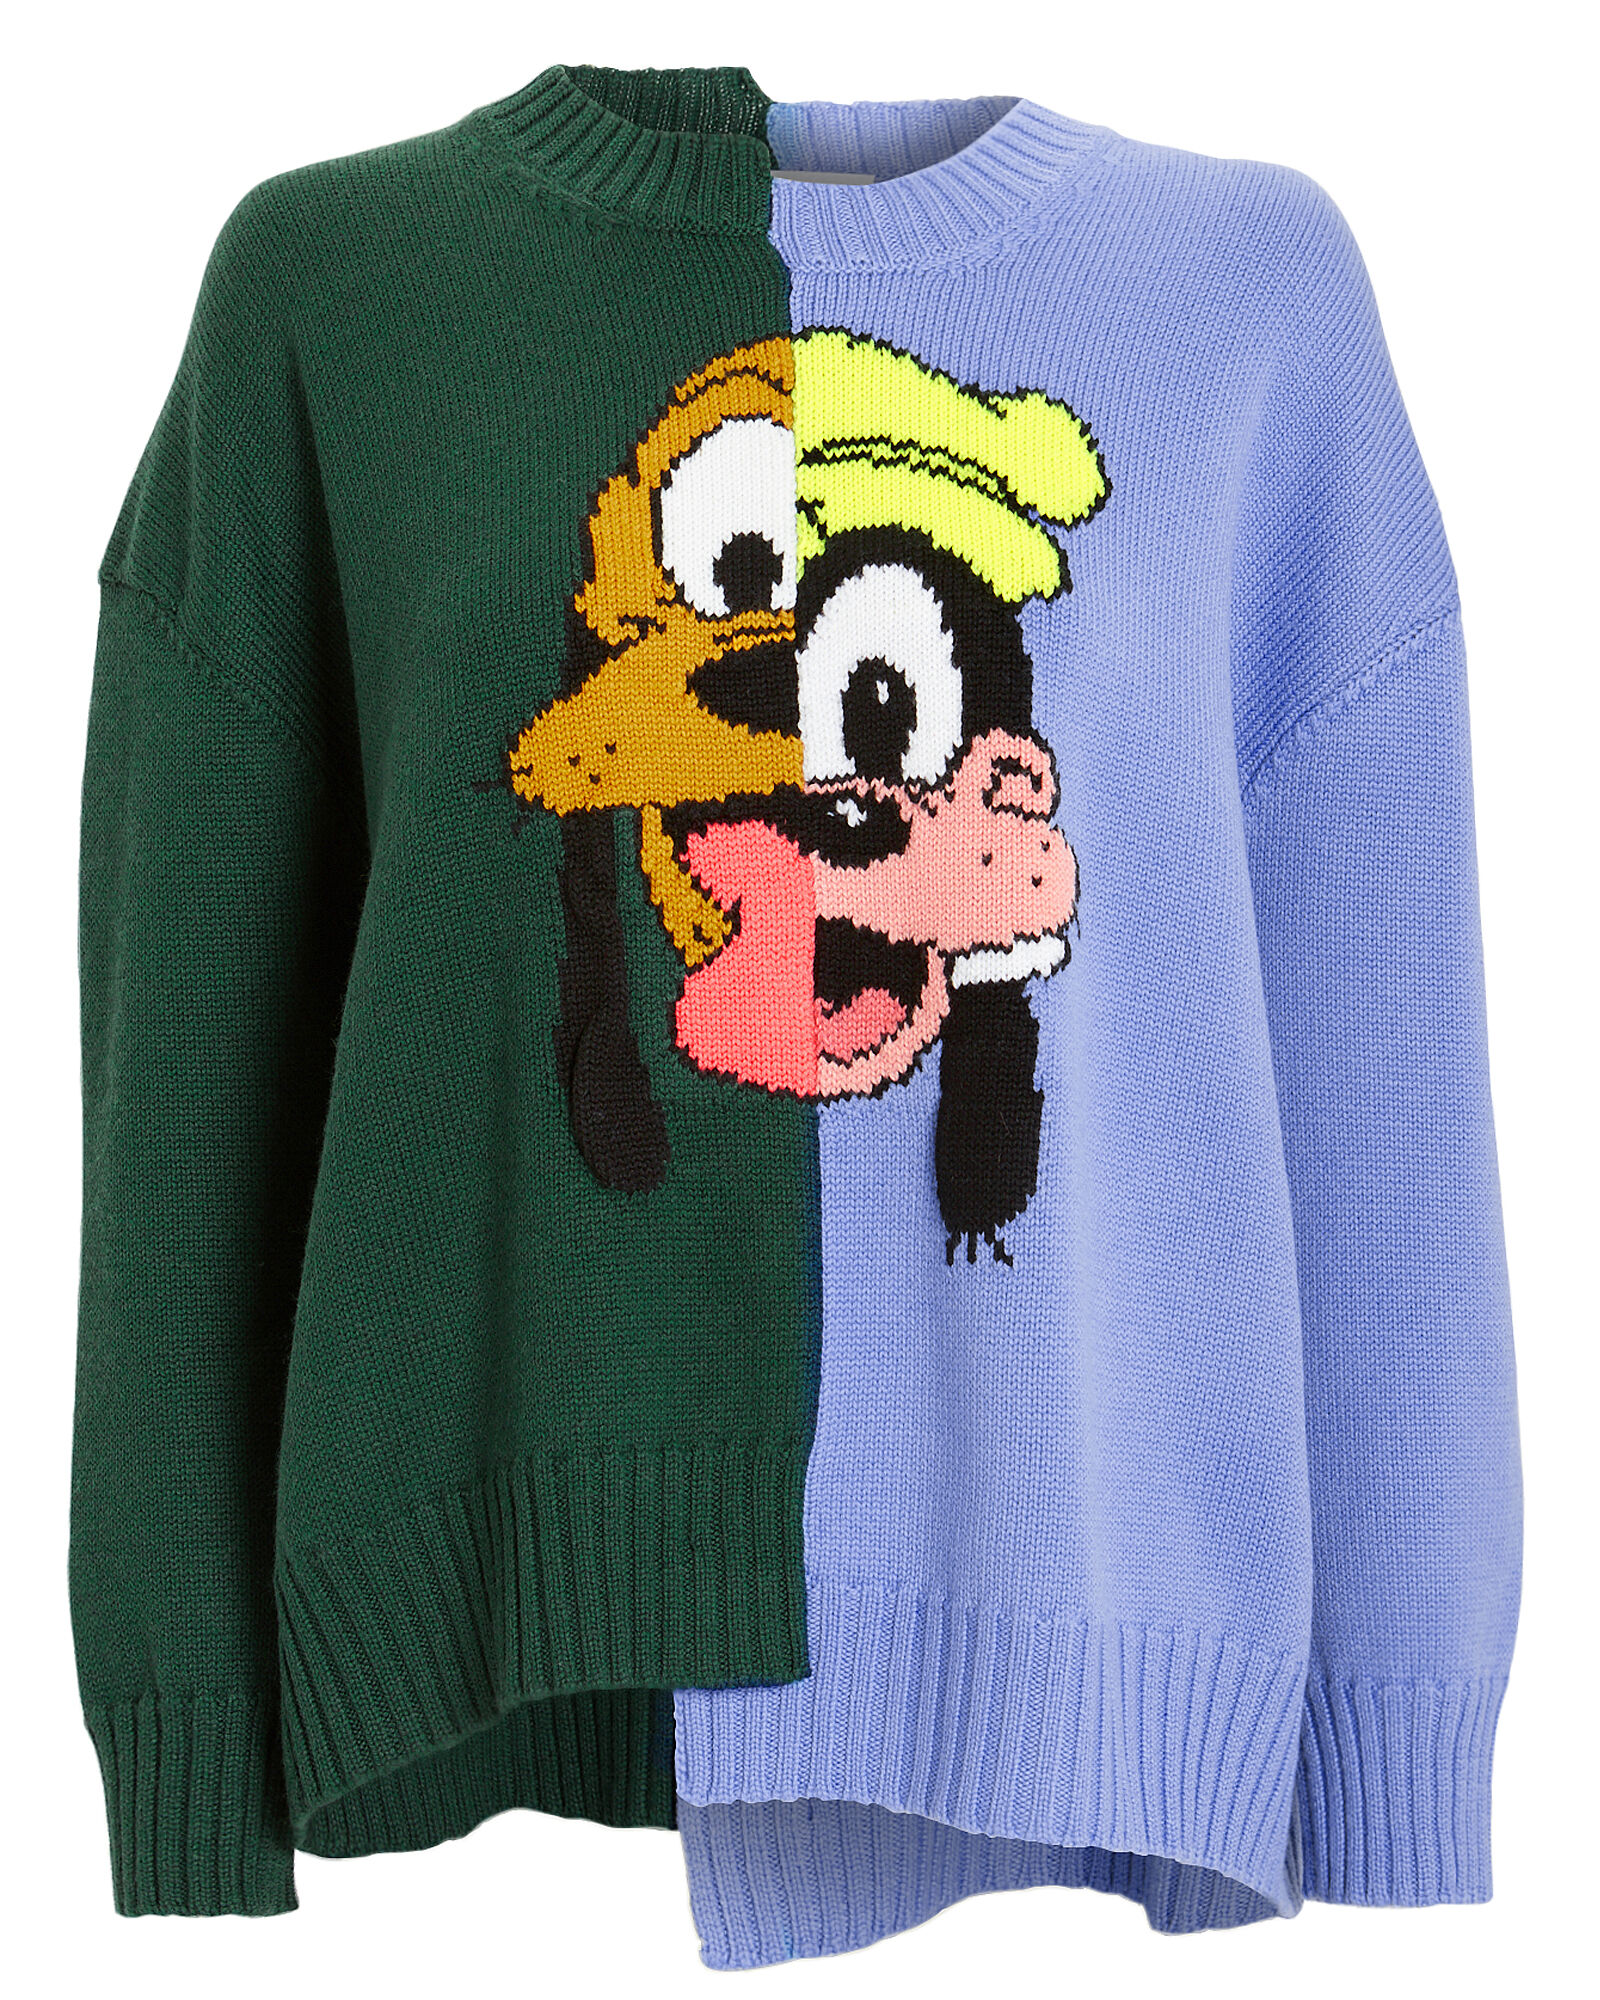 Pluto and Goofy Merino Wool Sweater, BLUE/GREEN, hi-res